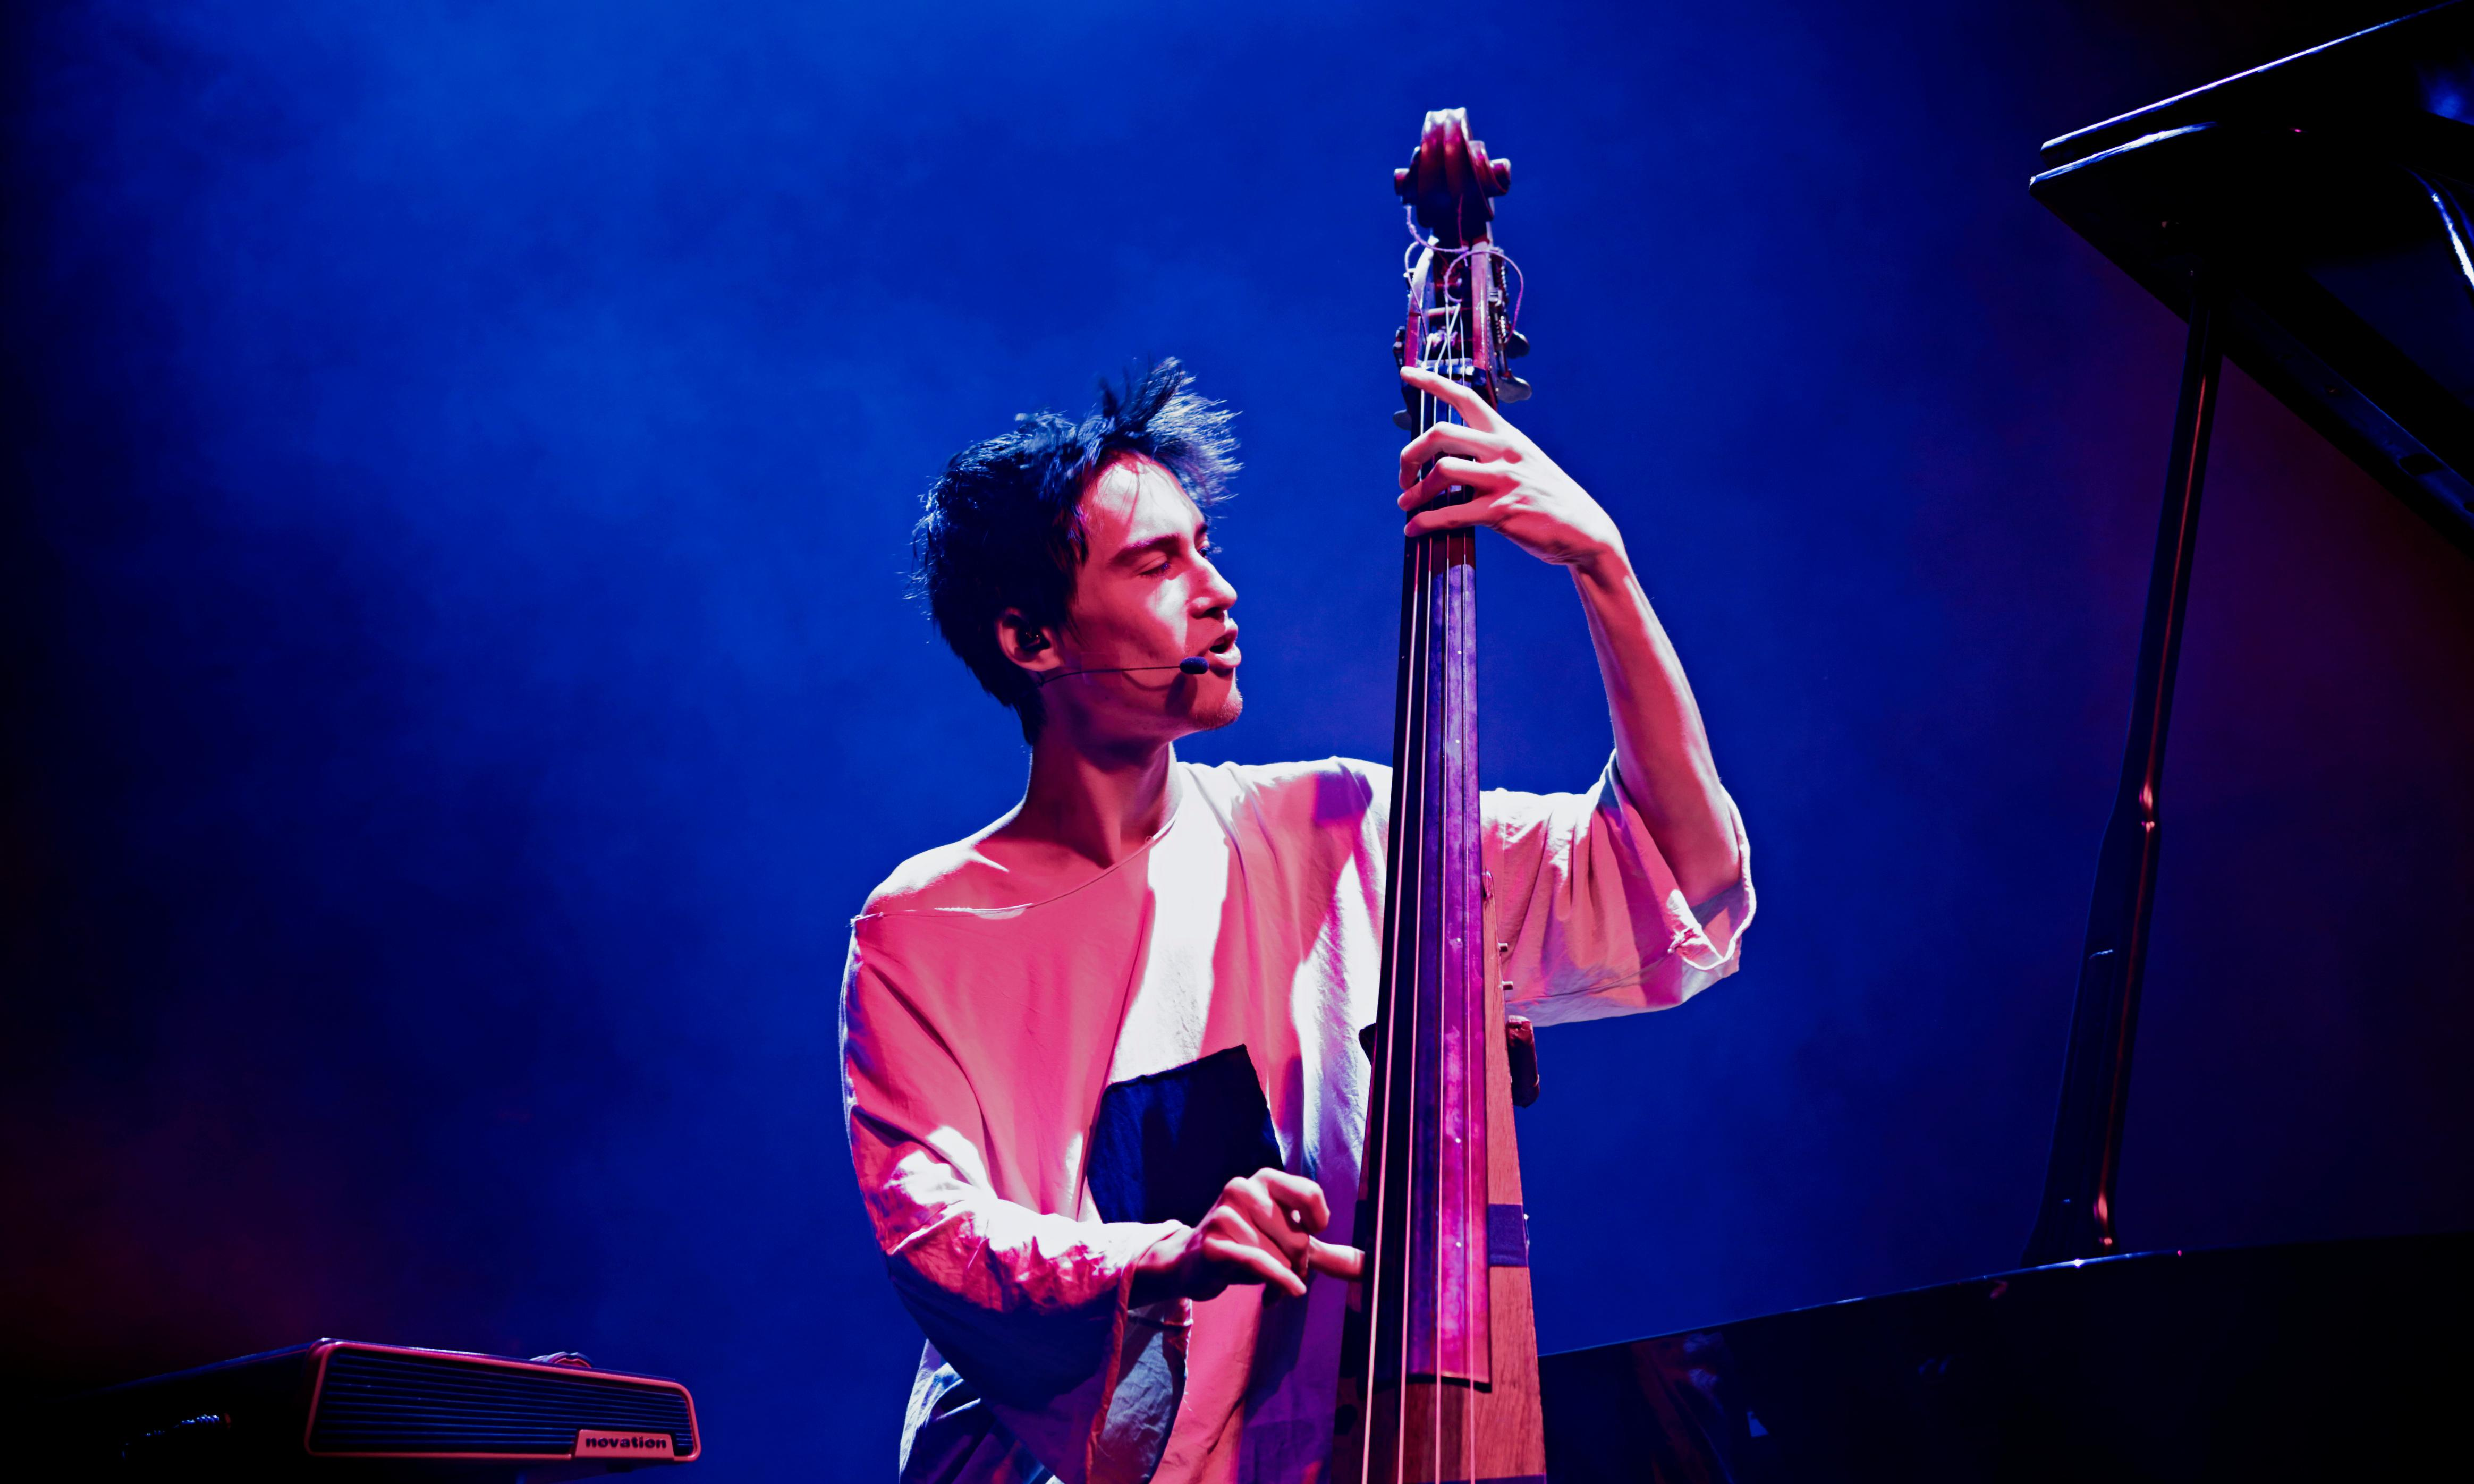 Jacob Collier: Djesse Vol 1 review – undoubted but intermittent magic